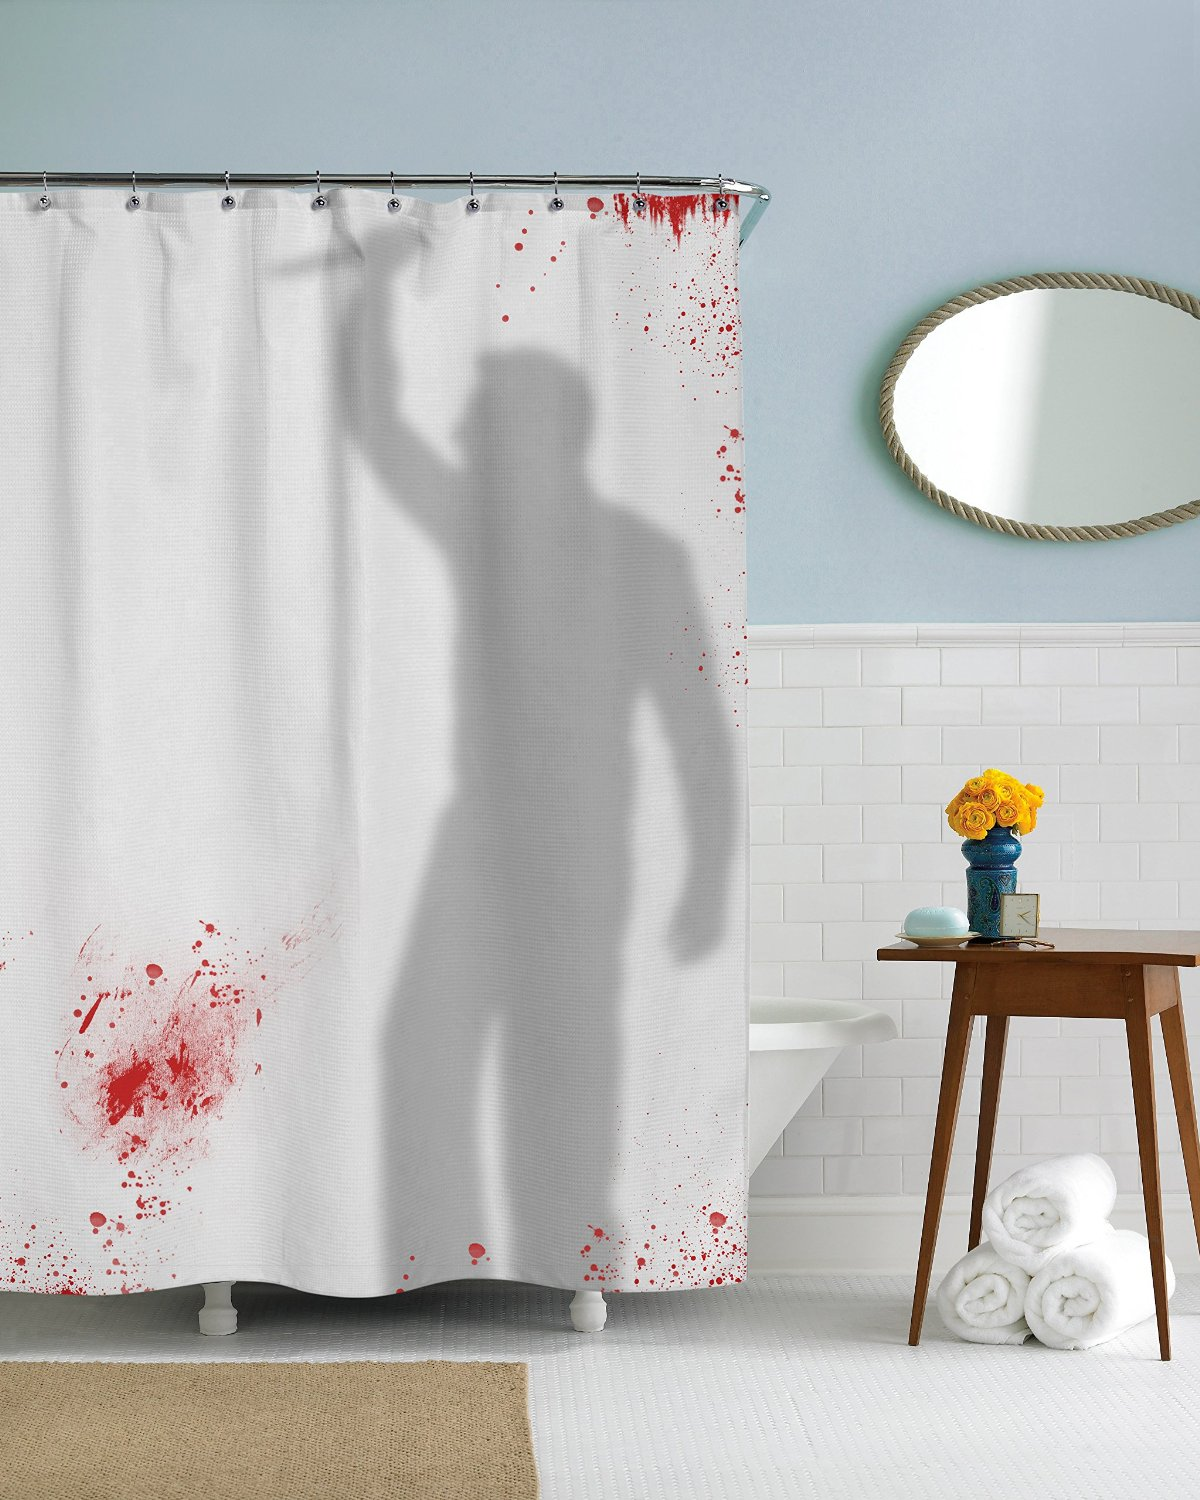 Psycho Shower Curtain With Sound 21 horror inspired shower curtains to ...